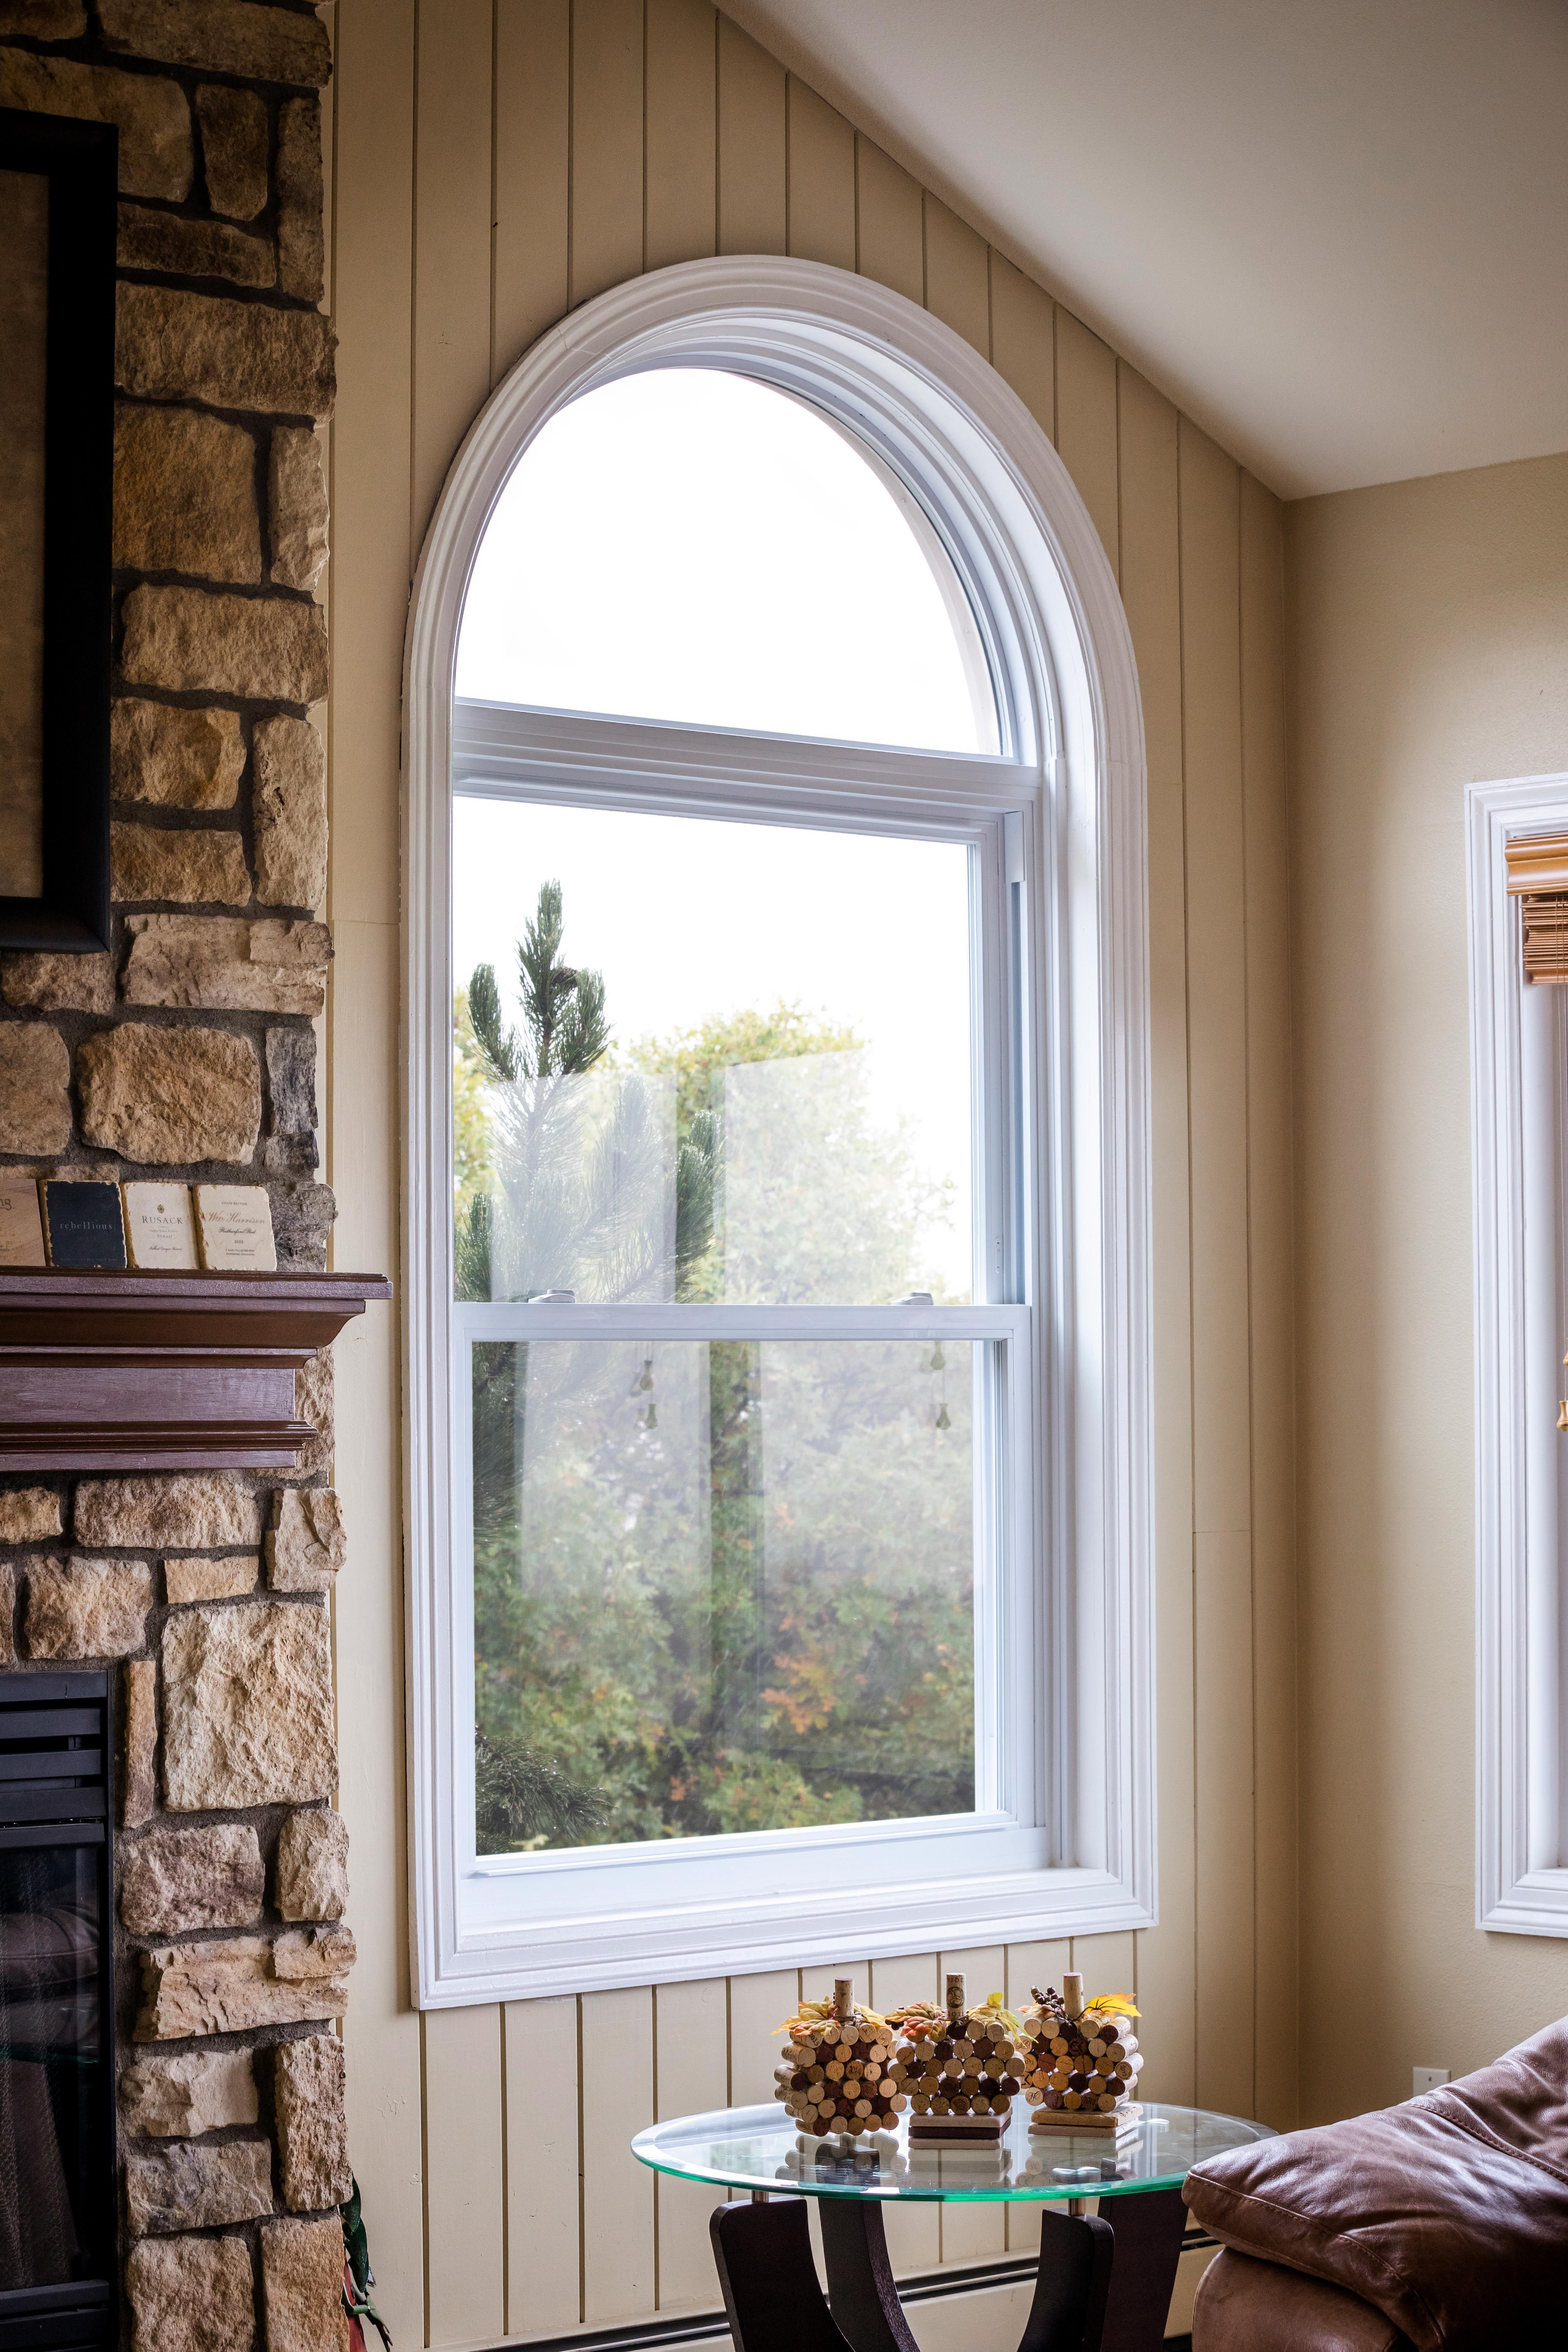 Arched Windows Add A Unique Impressive Appearance At An Affordable Price Windows Affordableprice Unique